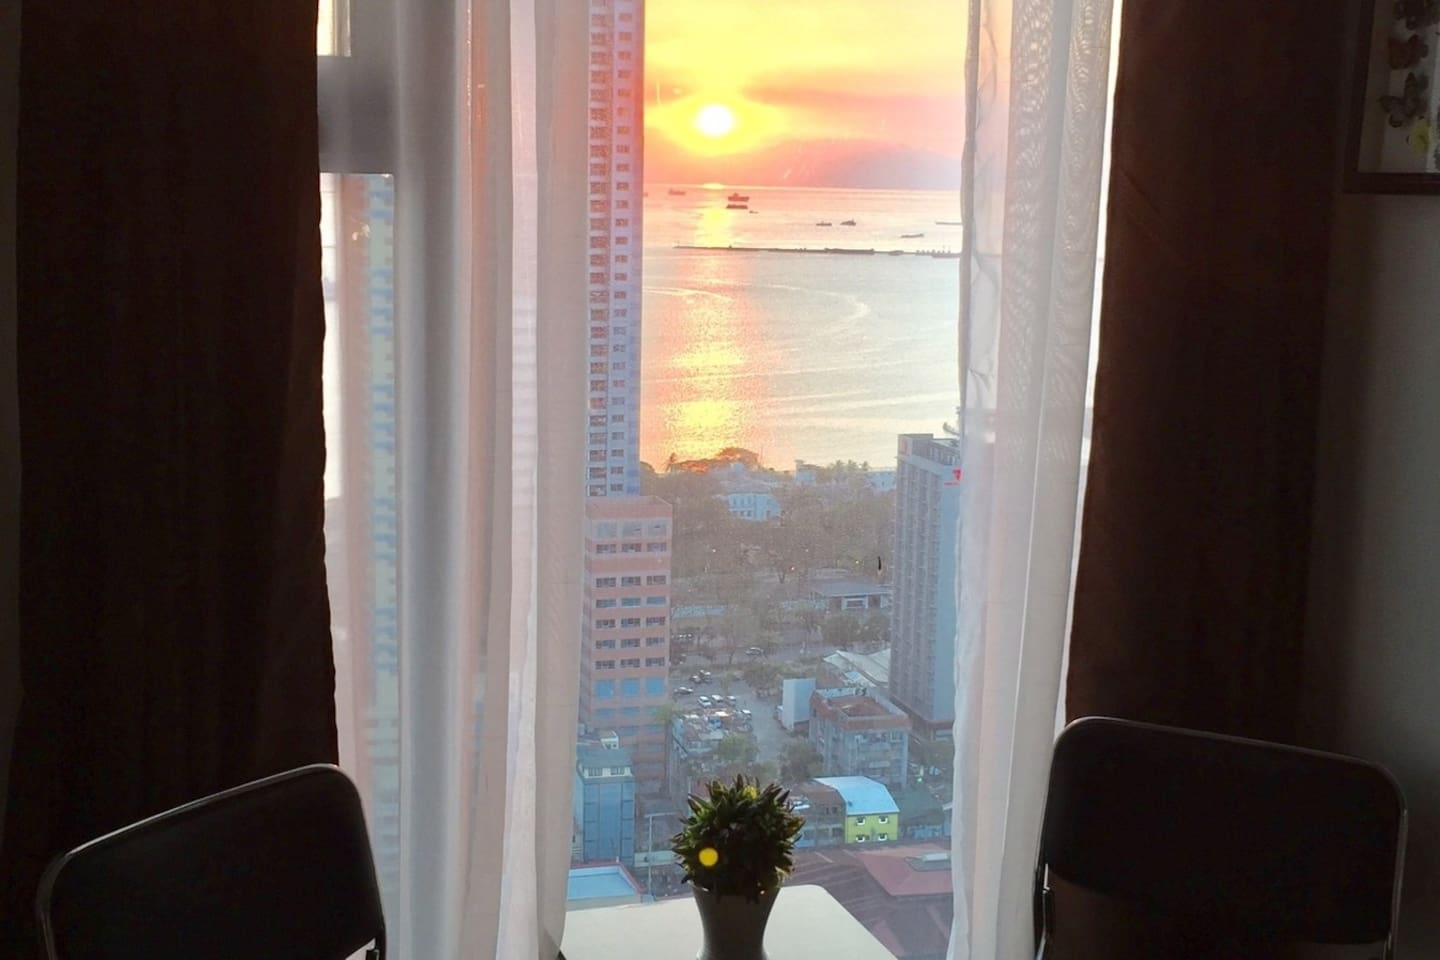 Magnificent Manila Bay sunset from the 39th floor of the condo unit. Perfect for a romantic moment.